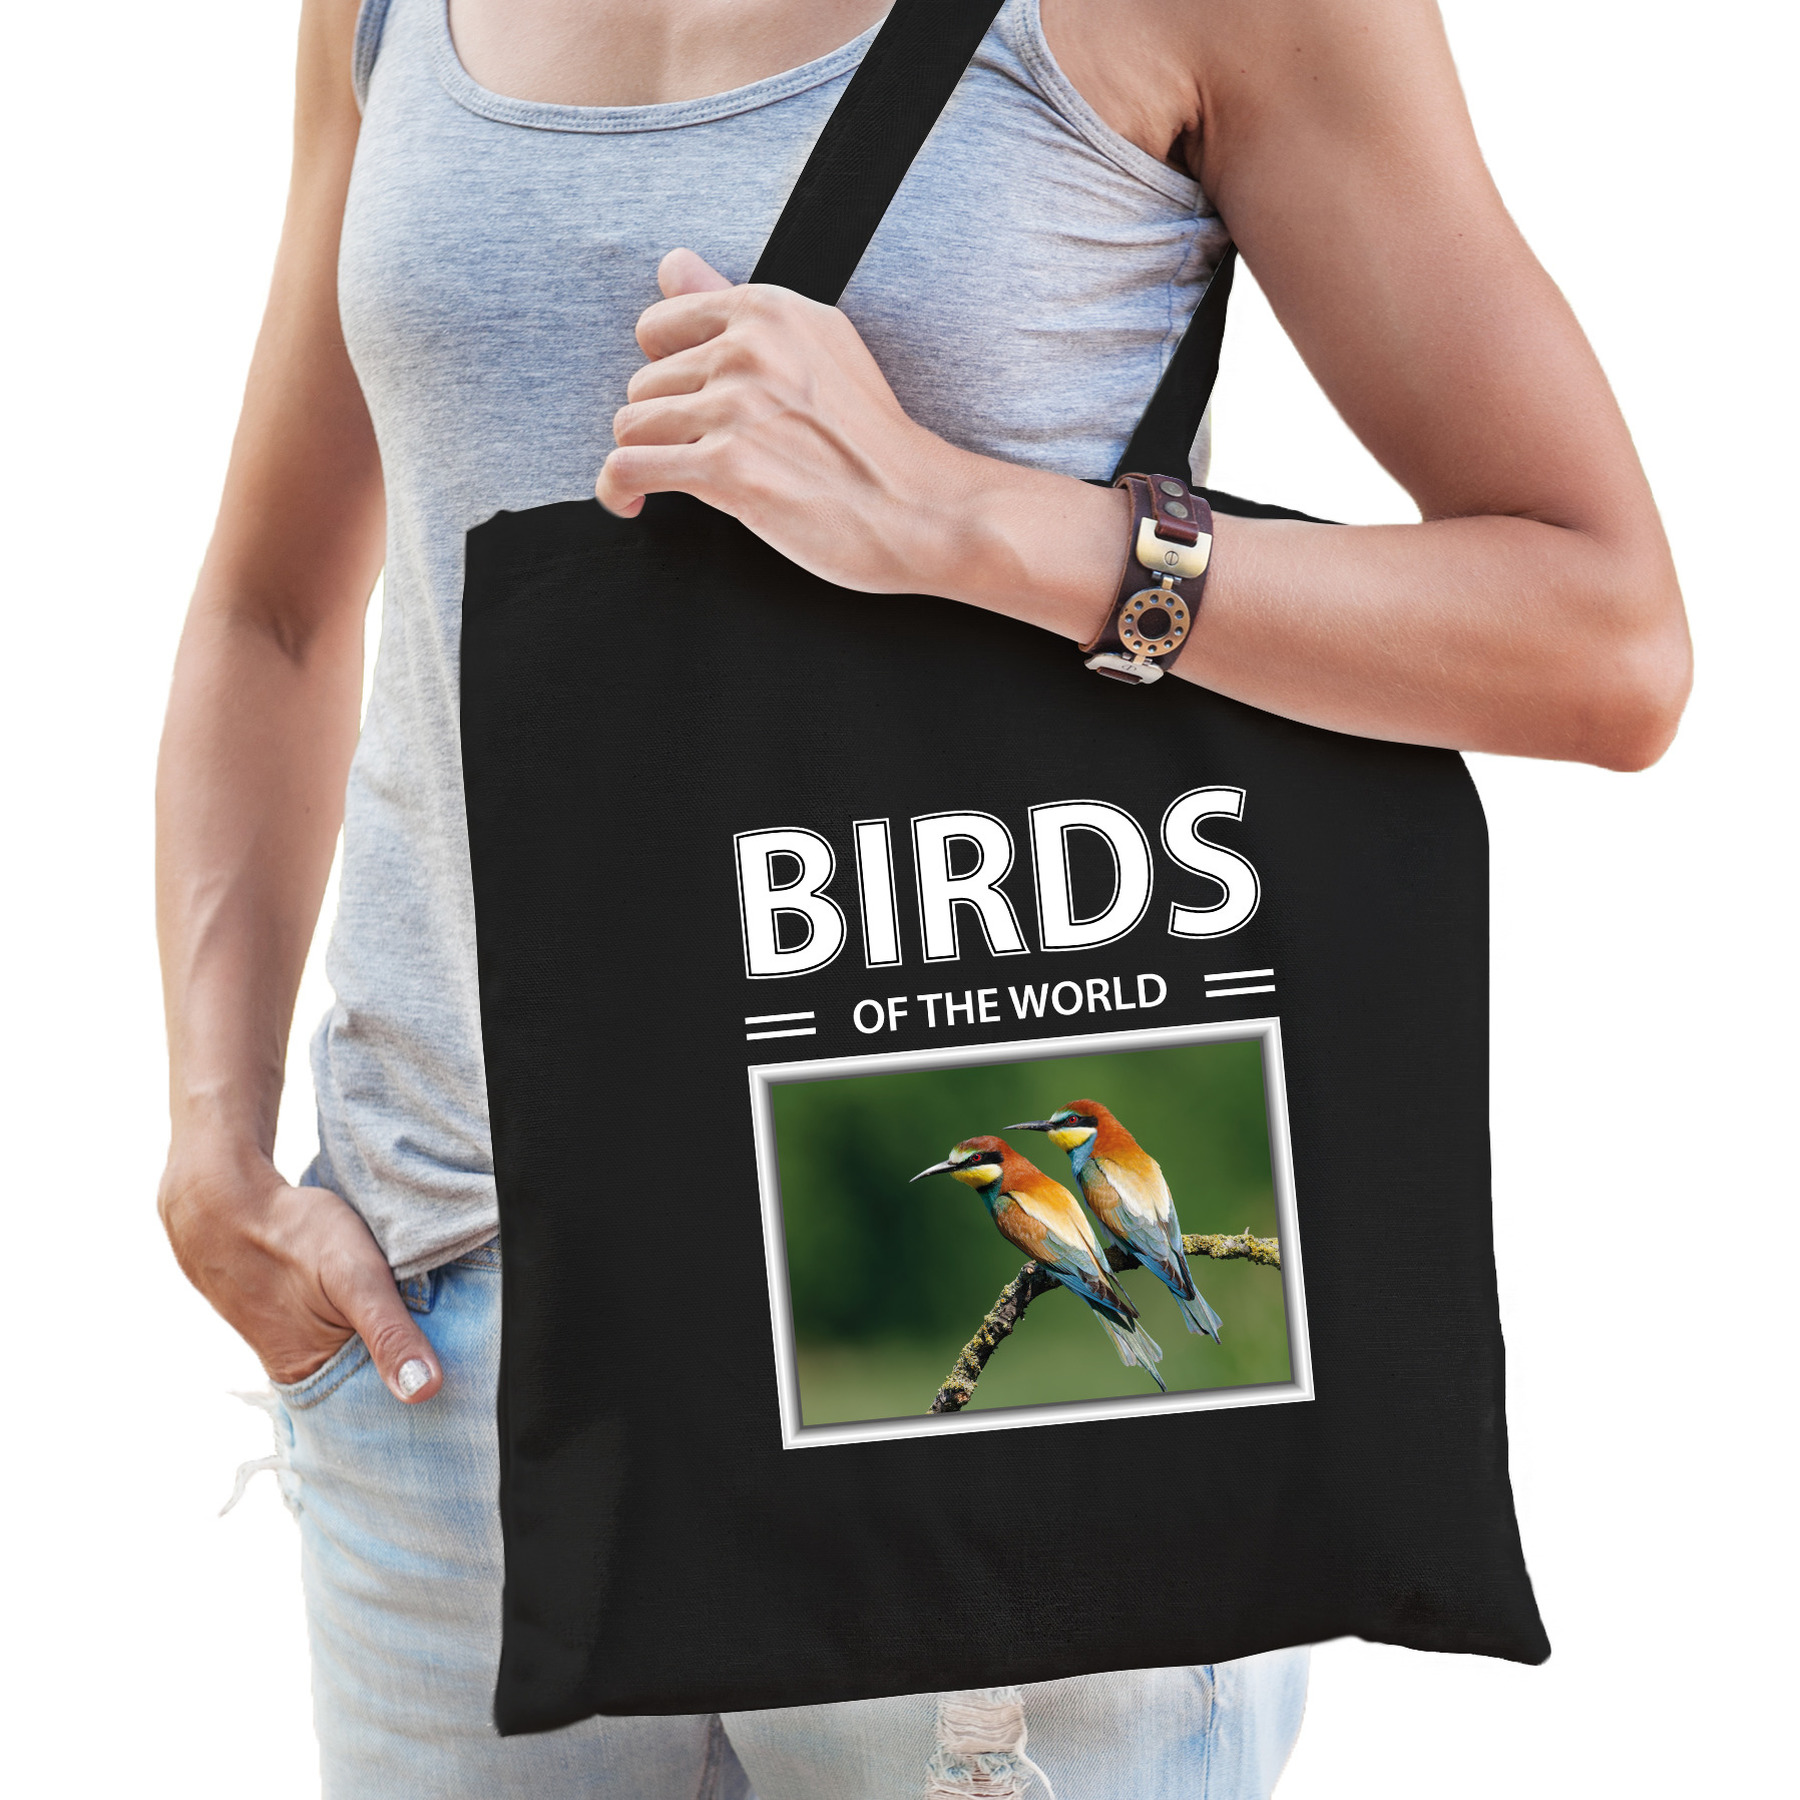 Katoenen tasje Bijeneter vogels zwart - birds of the world Bijeneter cadeau tas